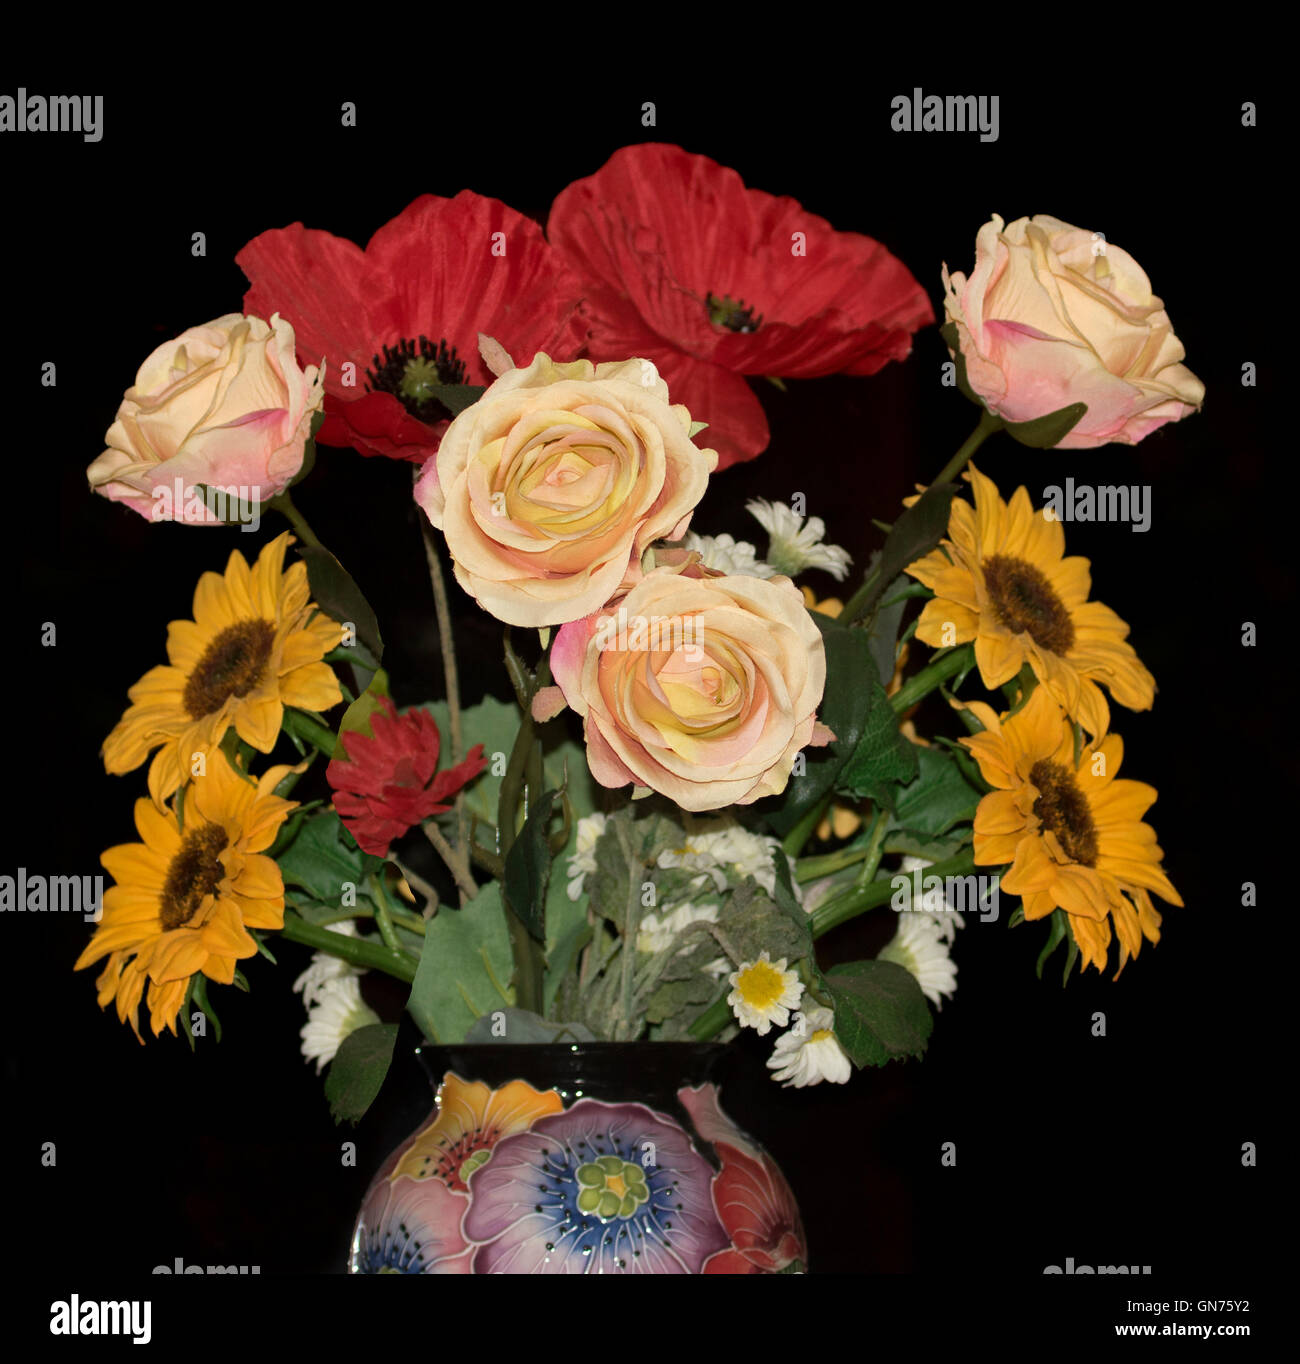 Arrangement Of Colourful Artificial Flowers Red Poppies Golden Stock Photo Alamy